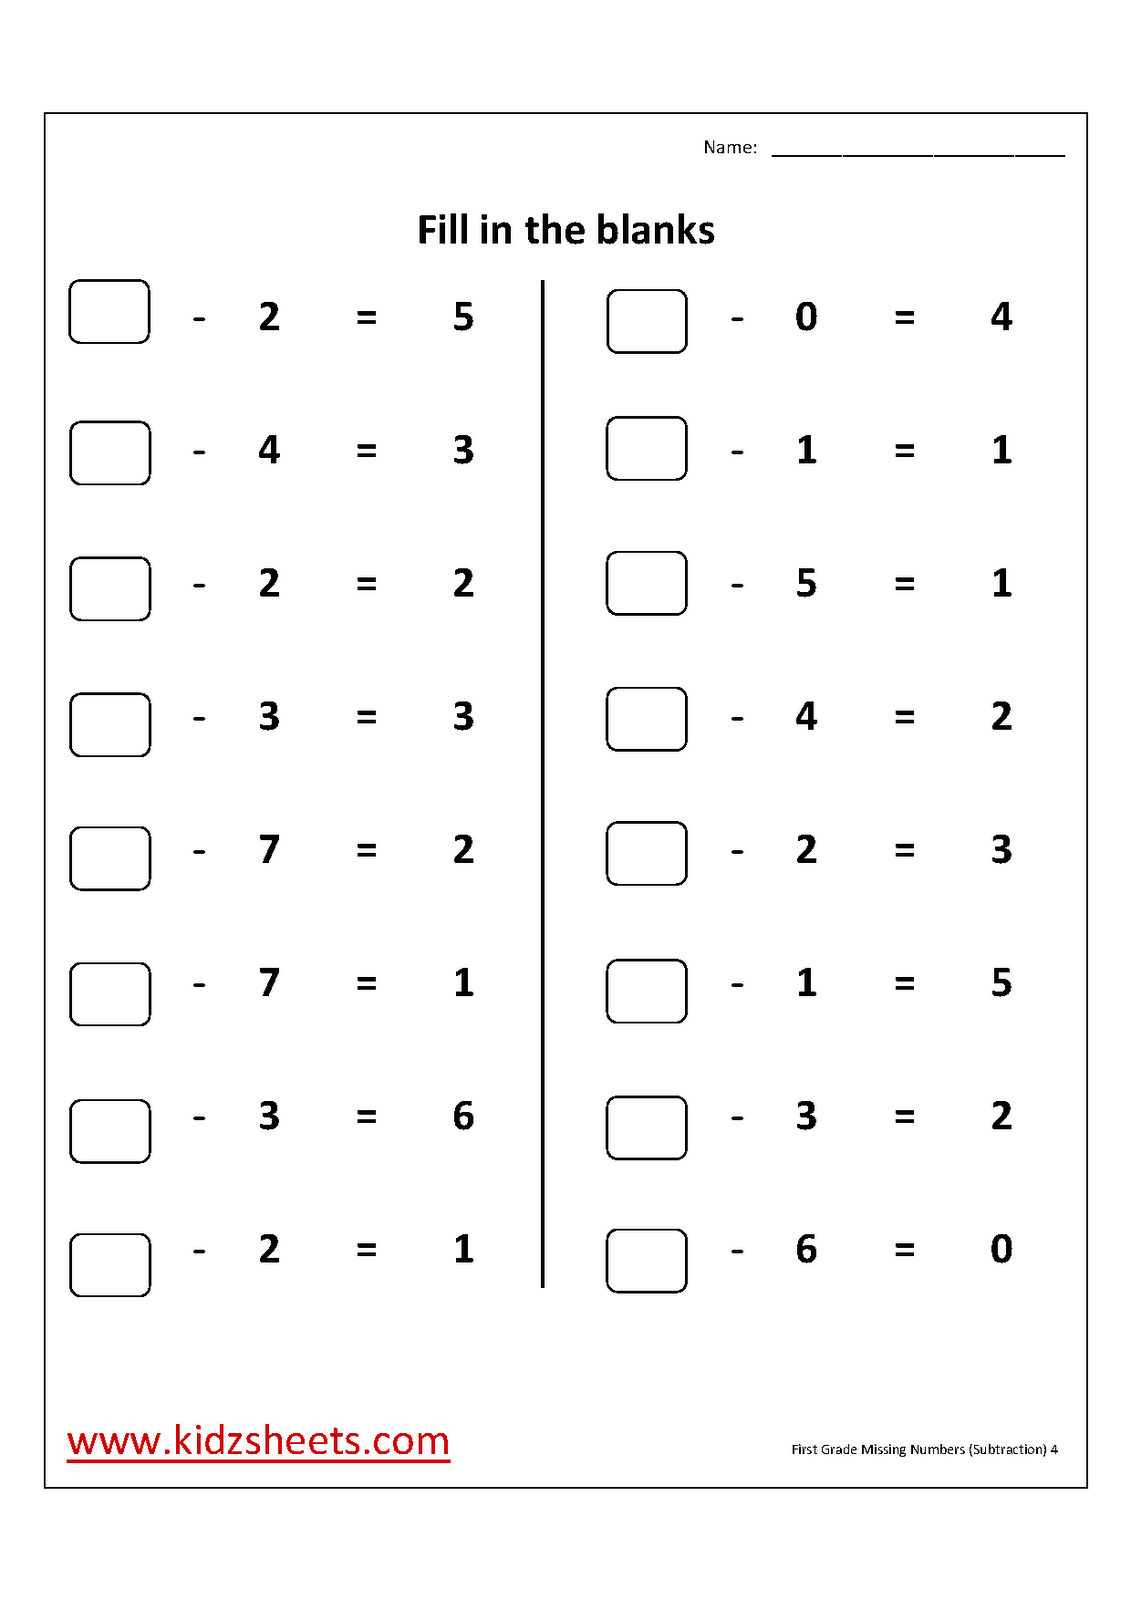 Kidz Worksheets First Grade Missing Numbers Worksheet4